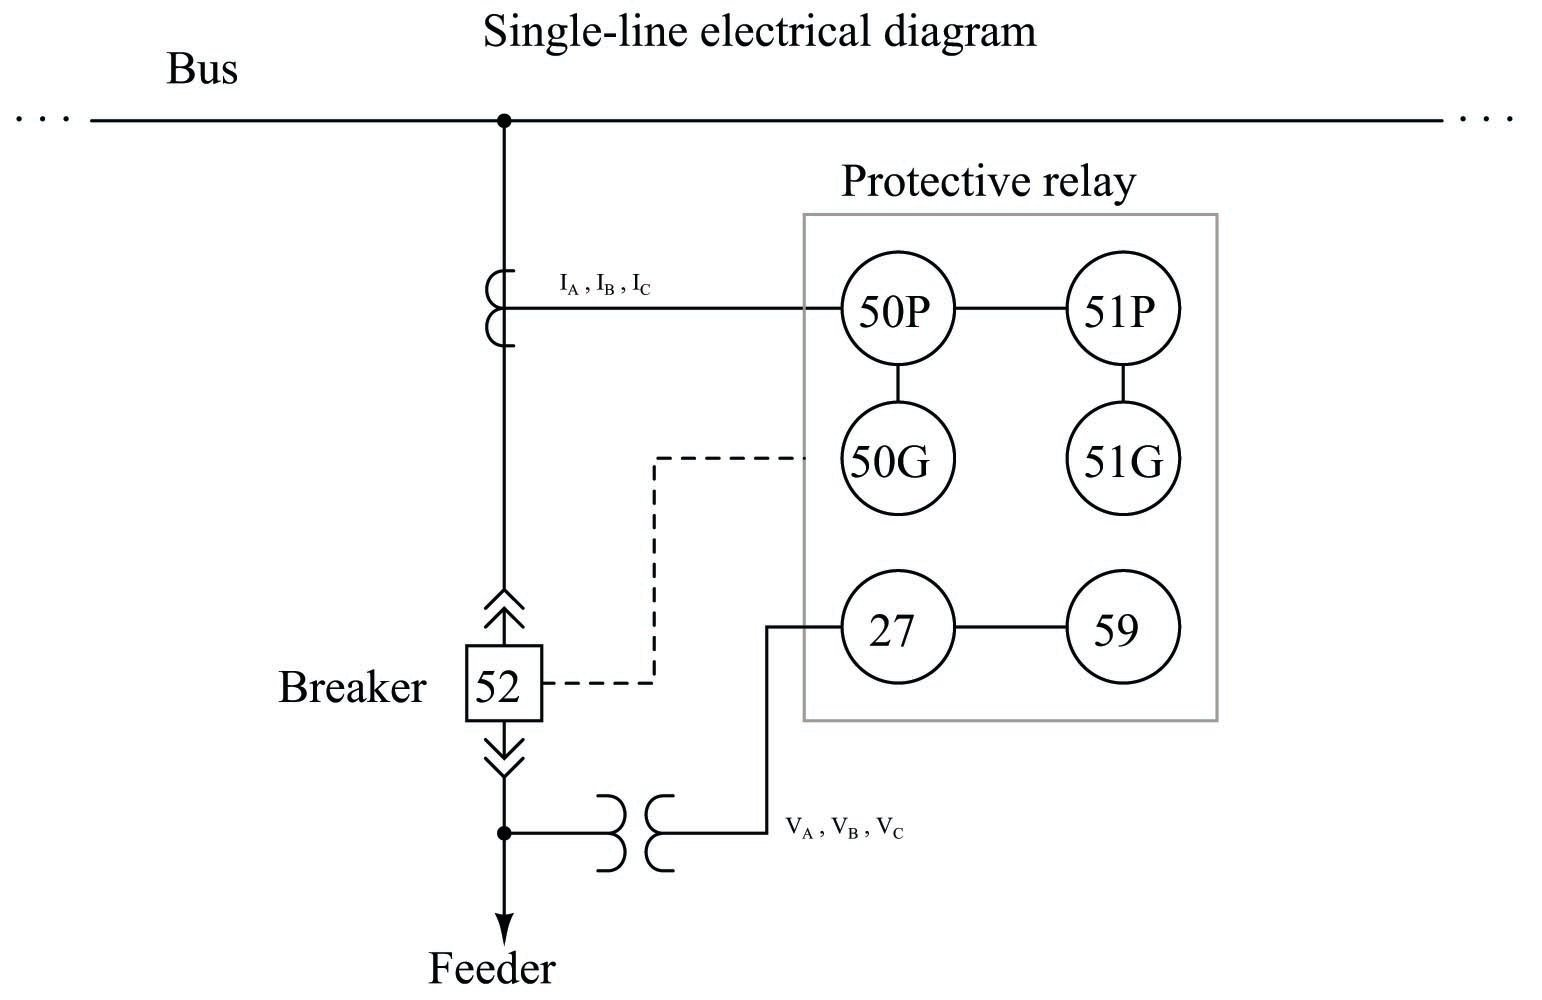 ANSI/IEEE Function Number Codes   Electric Power Measurement and ...